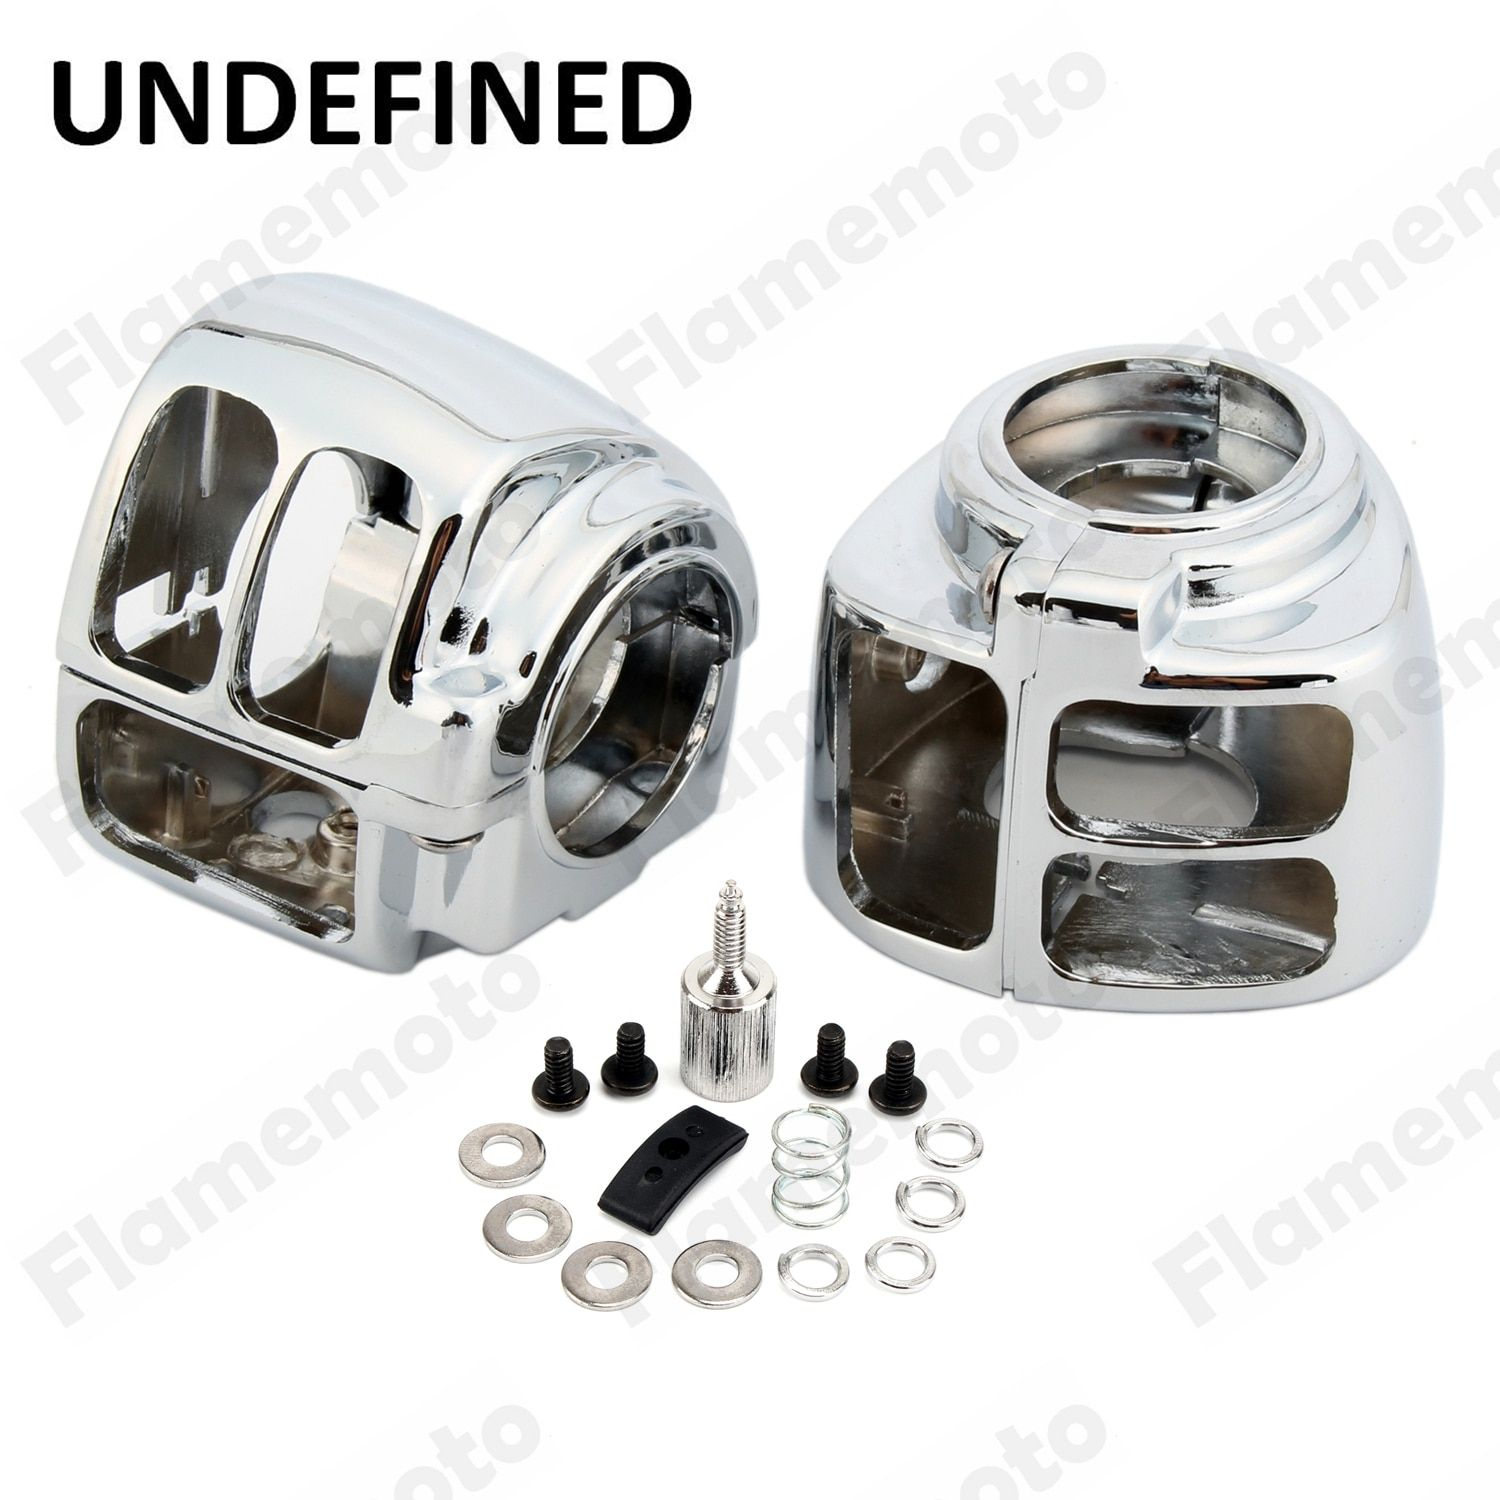 Motorcycle Bike Parts Chrome Handlebar Switch Housing Cover For Harley Sportster Iron 883 1200 XL 2014 2015 2016 UNDEFINED